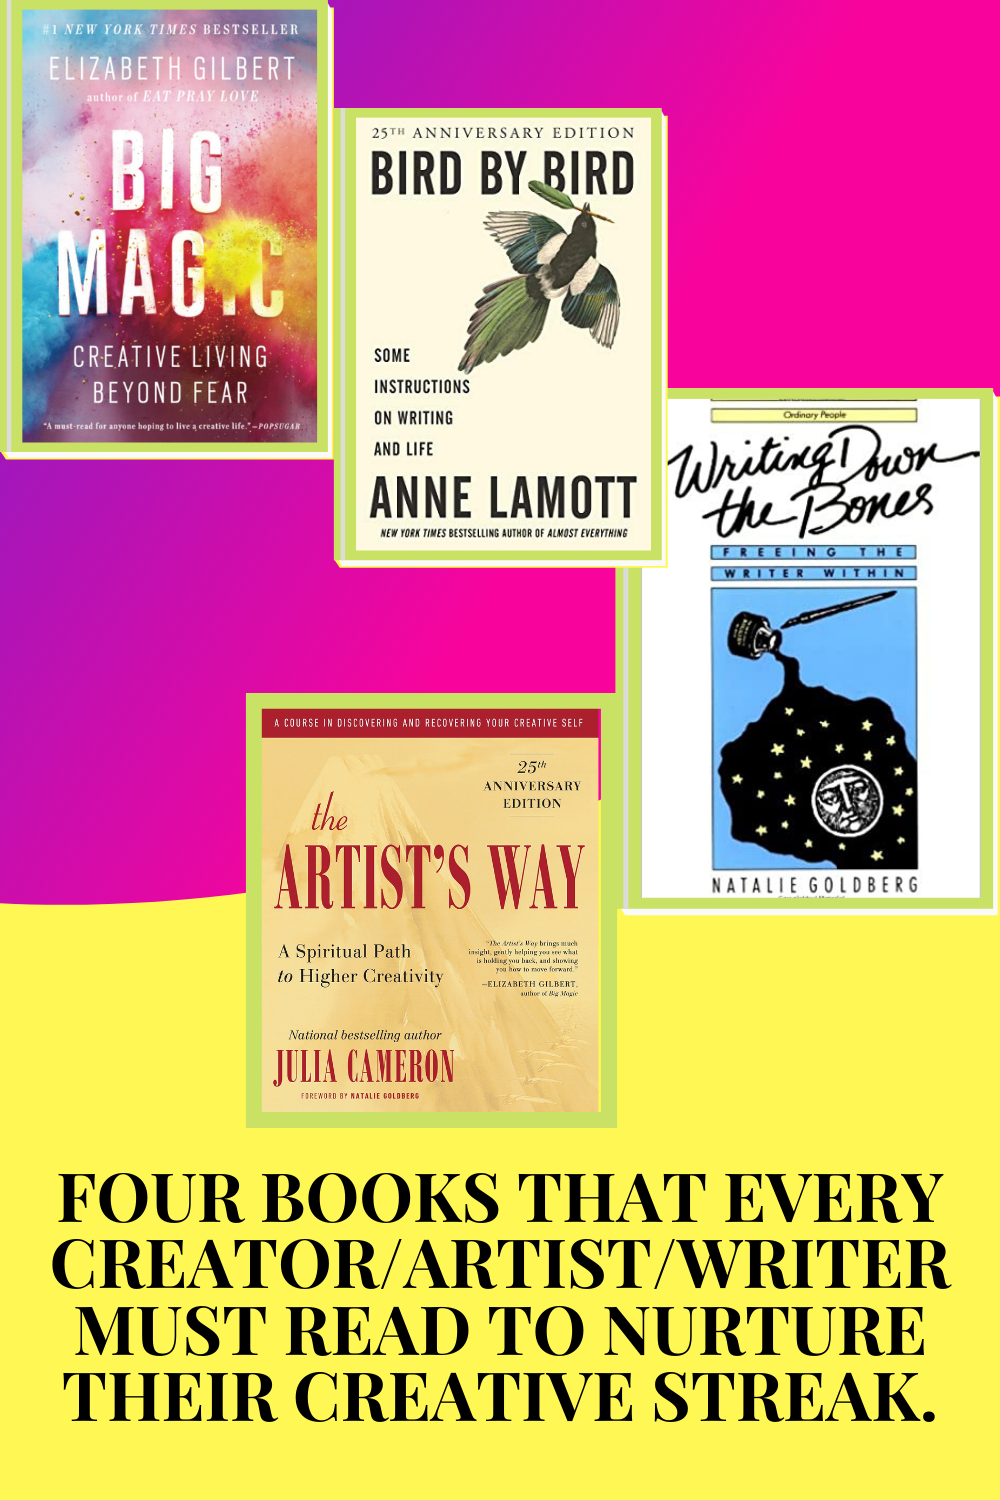 Four life-altering books for every artist, writer or creator